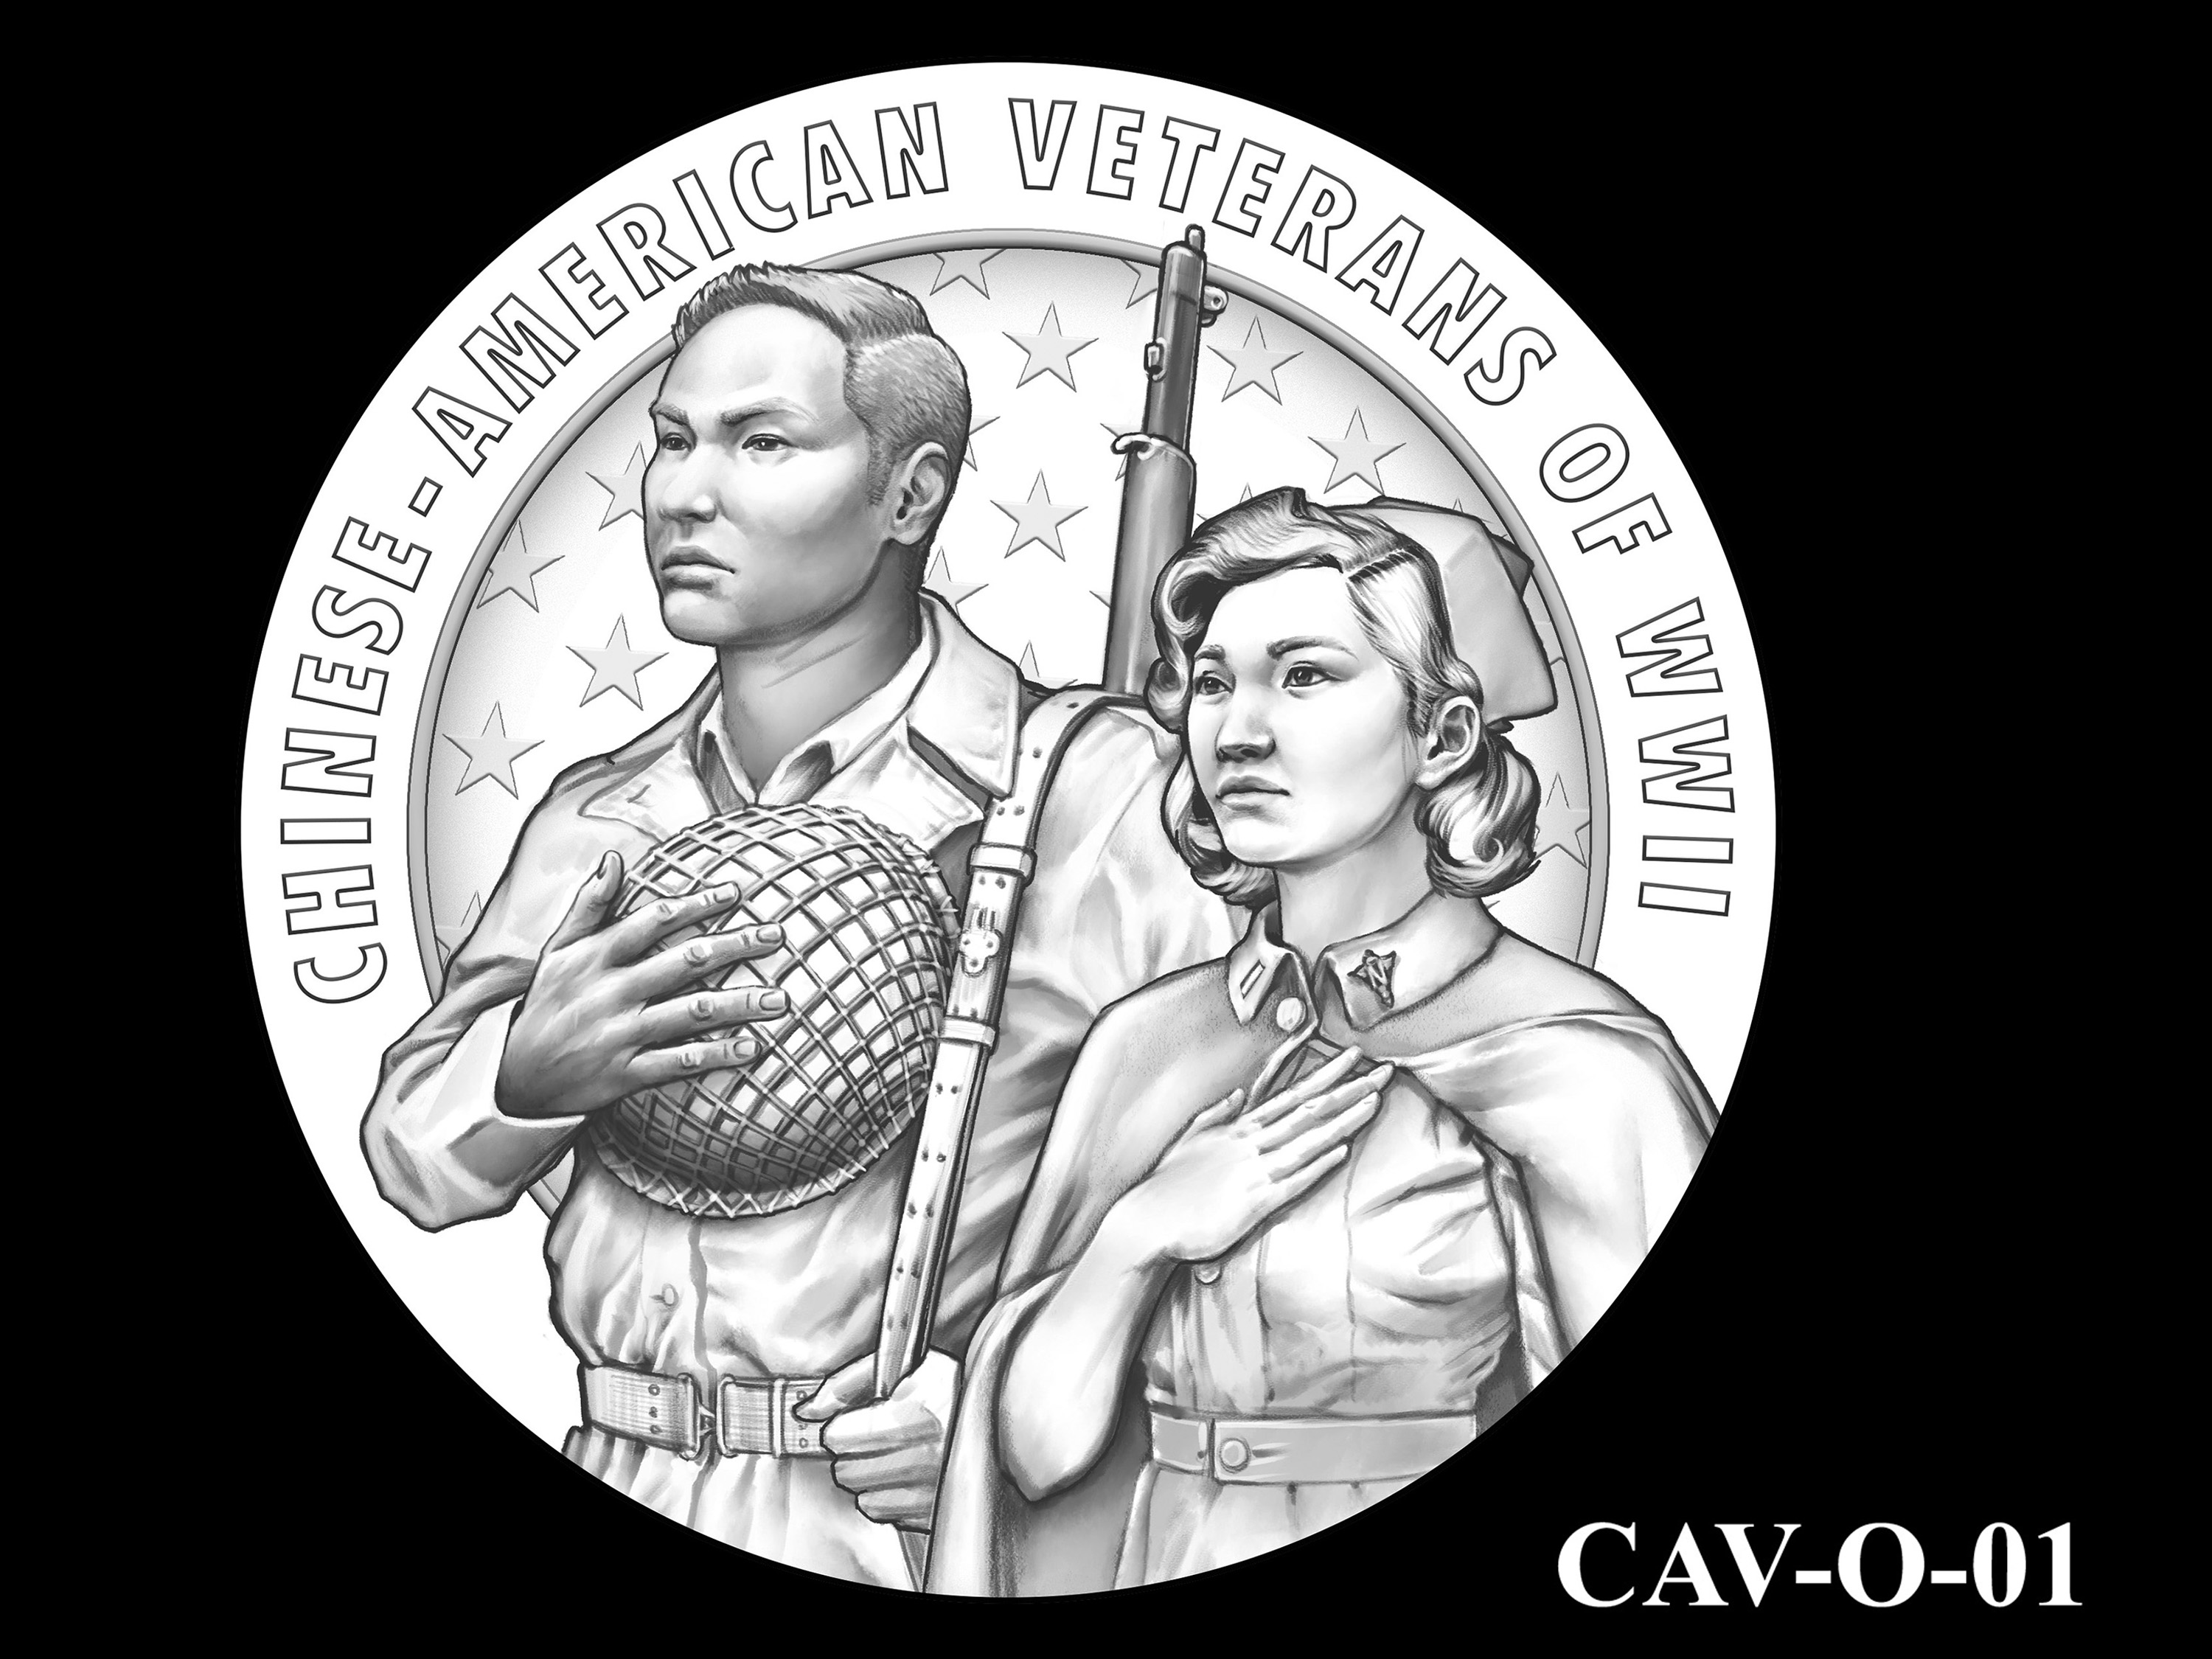 CAV-O-01 -- Chinese-American Veterans of World War II Congressional Gold Medal - Obverse